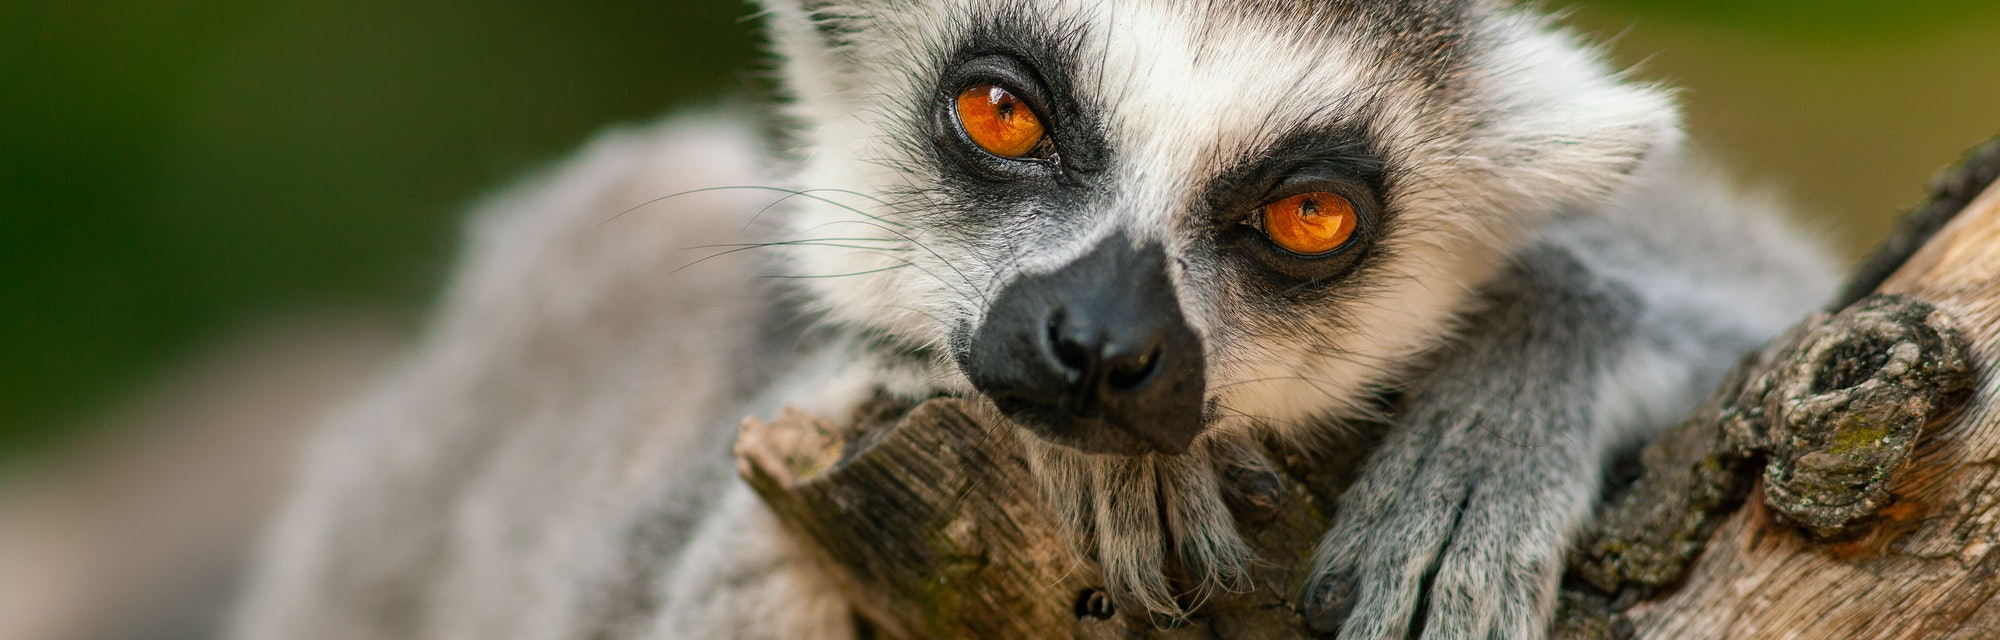 Beautiful close-up portrait of a cute ring-tailed lemur in its natural habitat